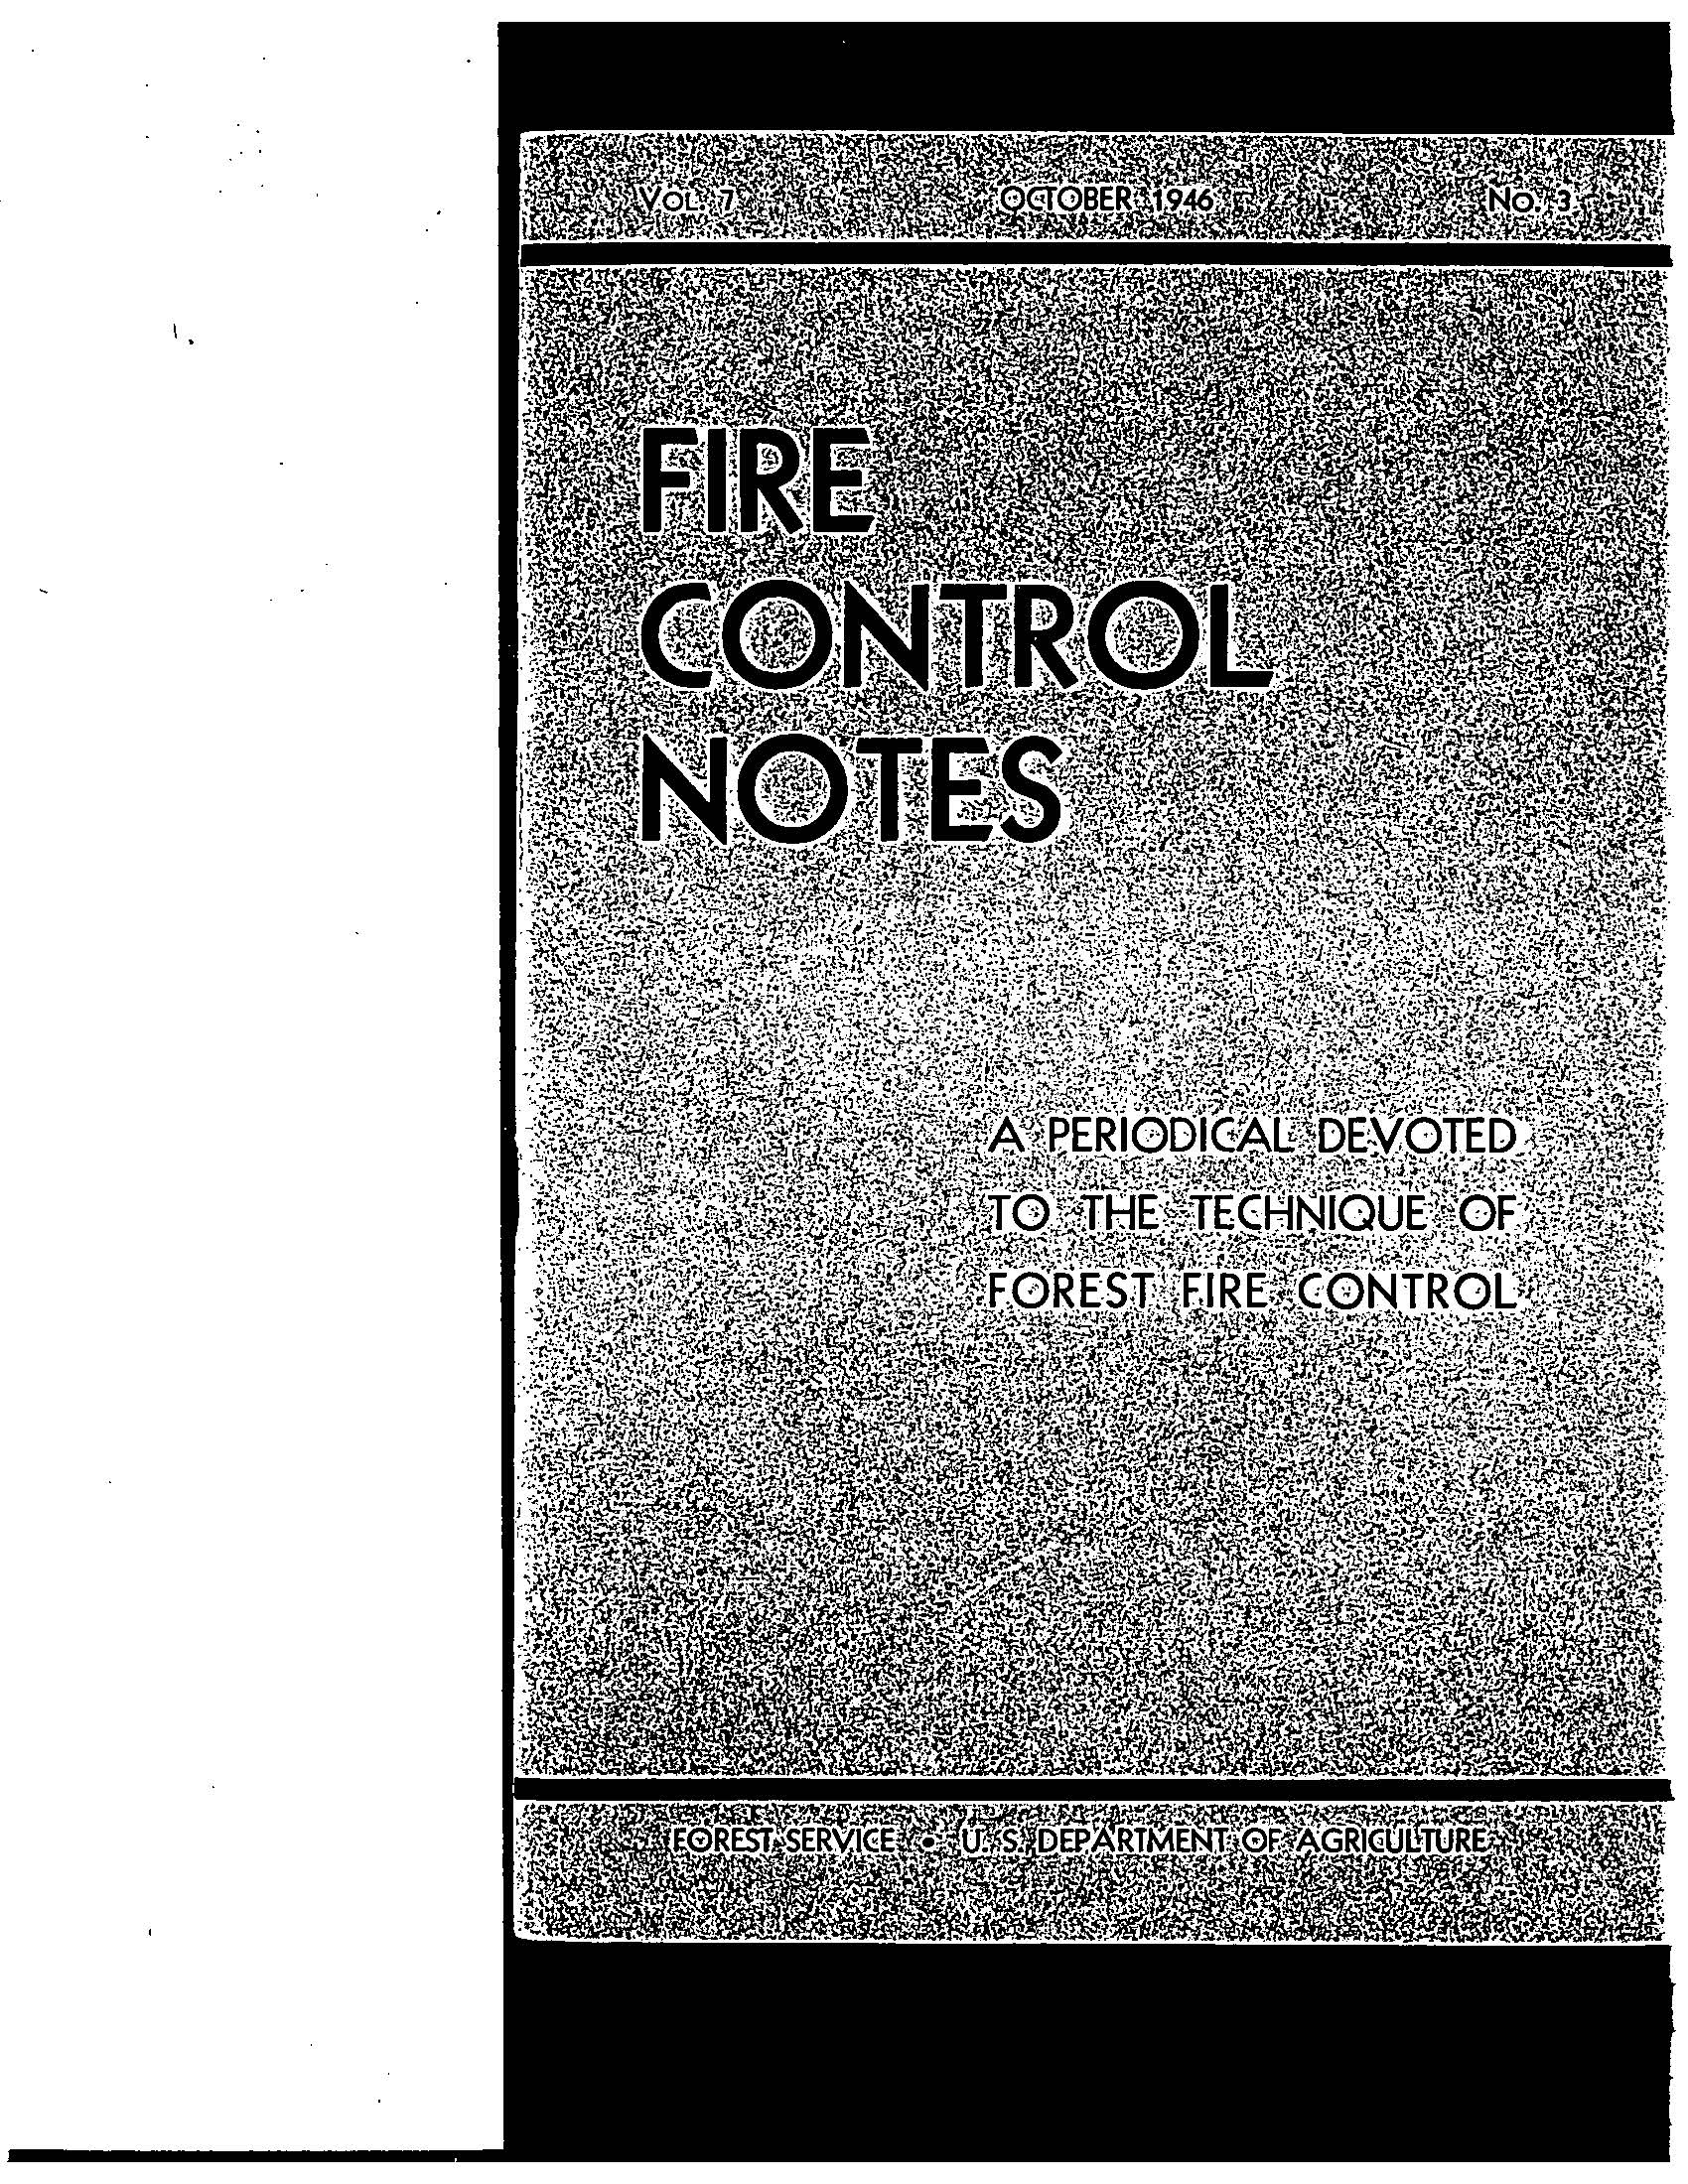 Cover of Fire Management Today Volume 07, Issue 03